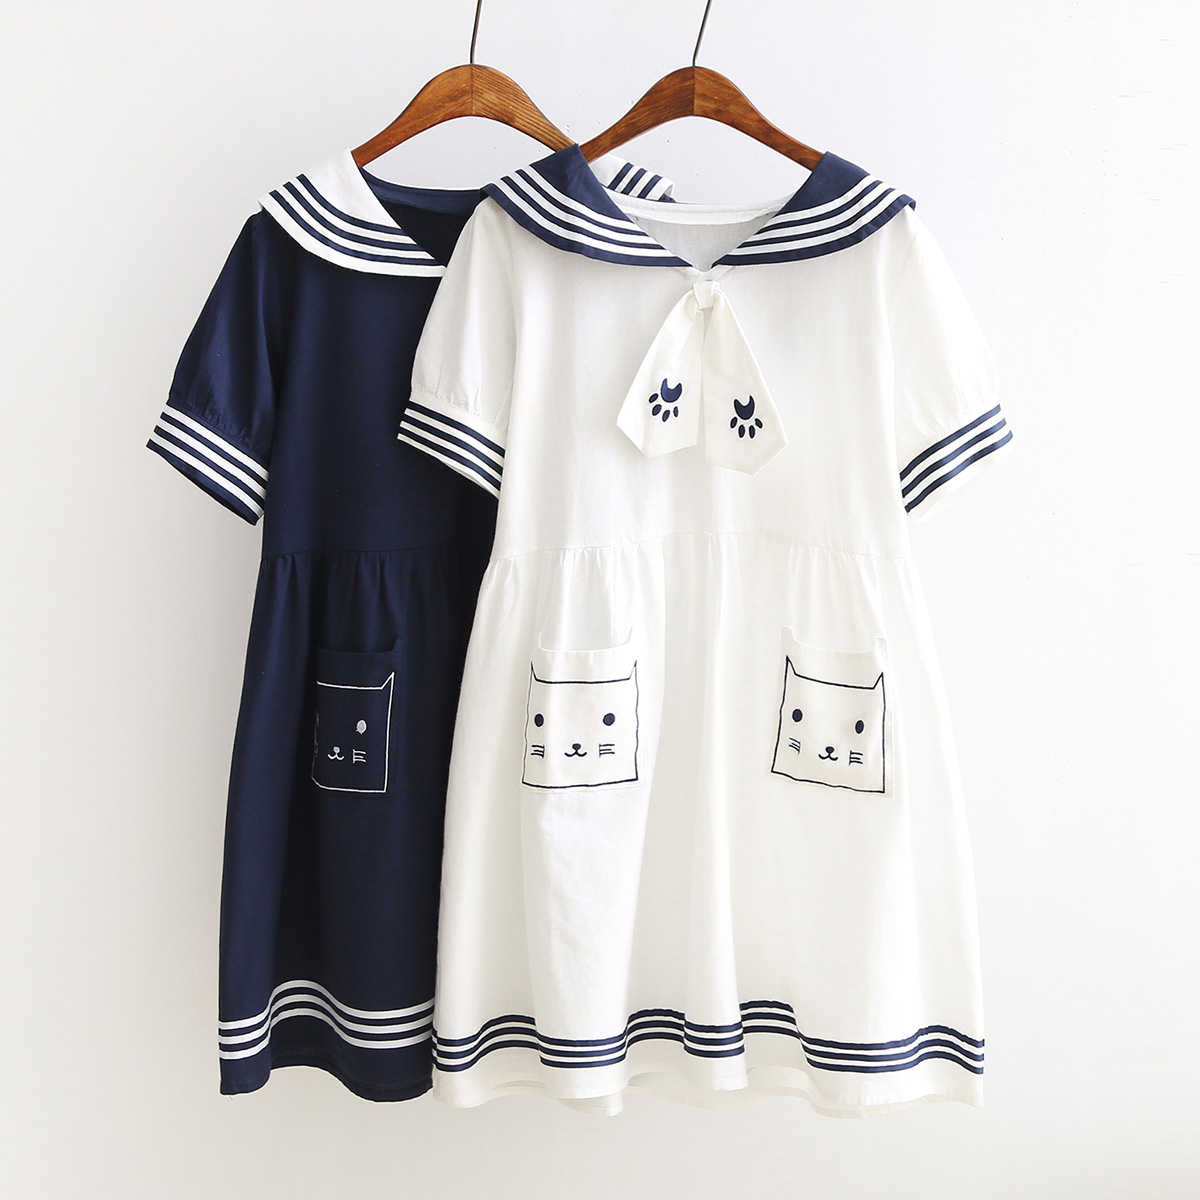 72e8507f97e34 China Navy Style Girl, China Navy Style Girl Shopping Guide at ...